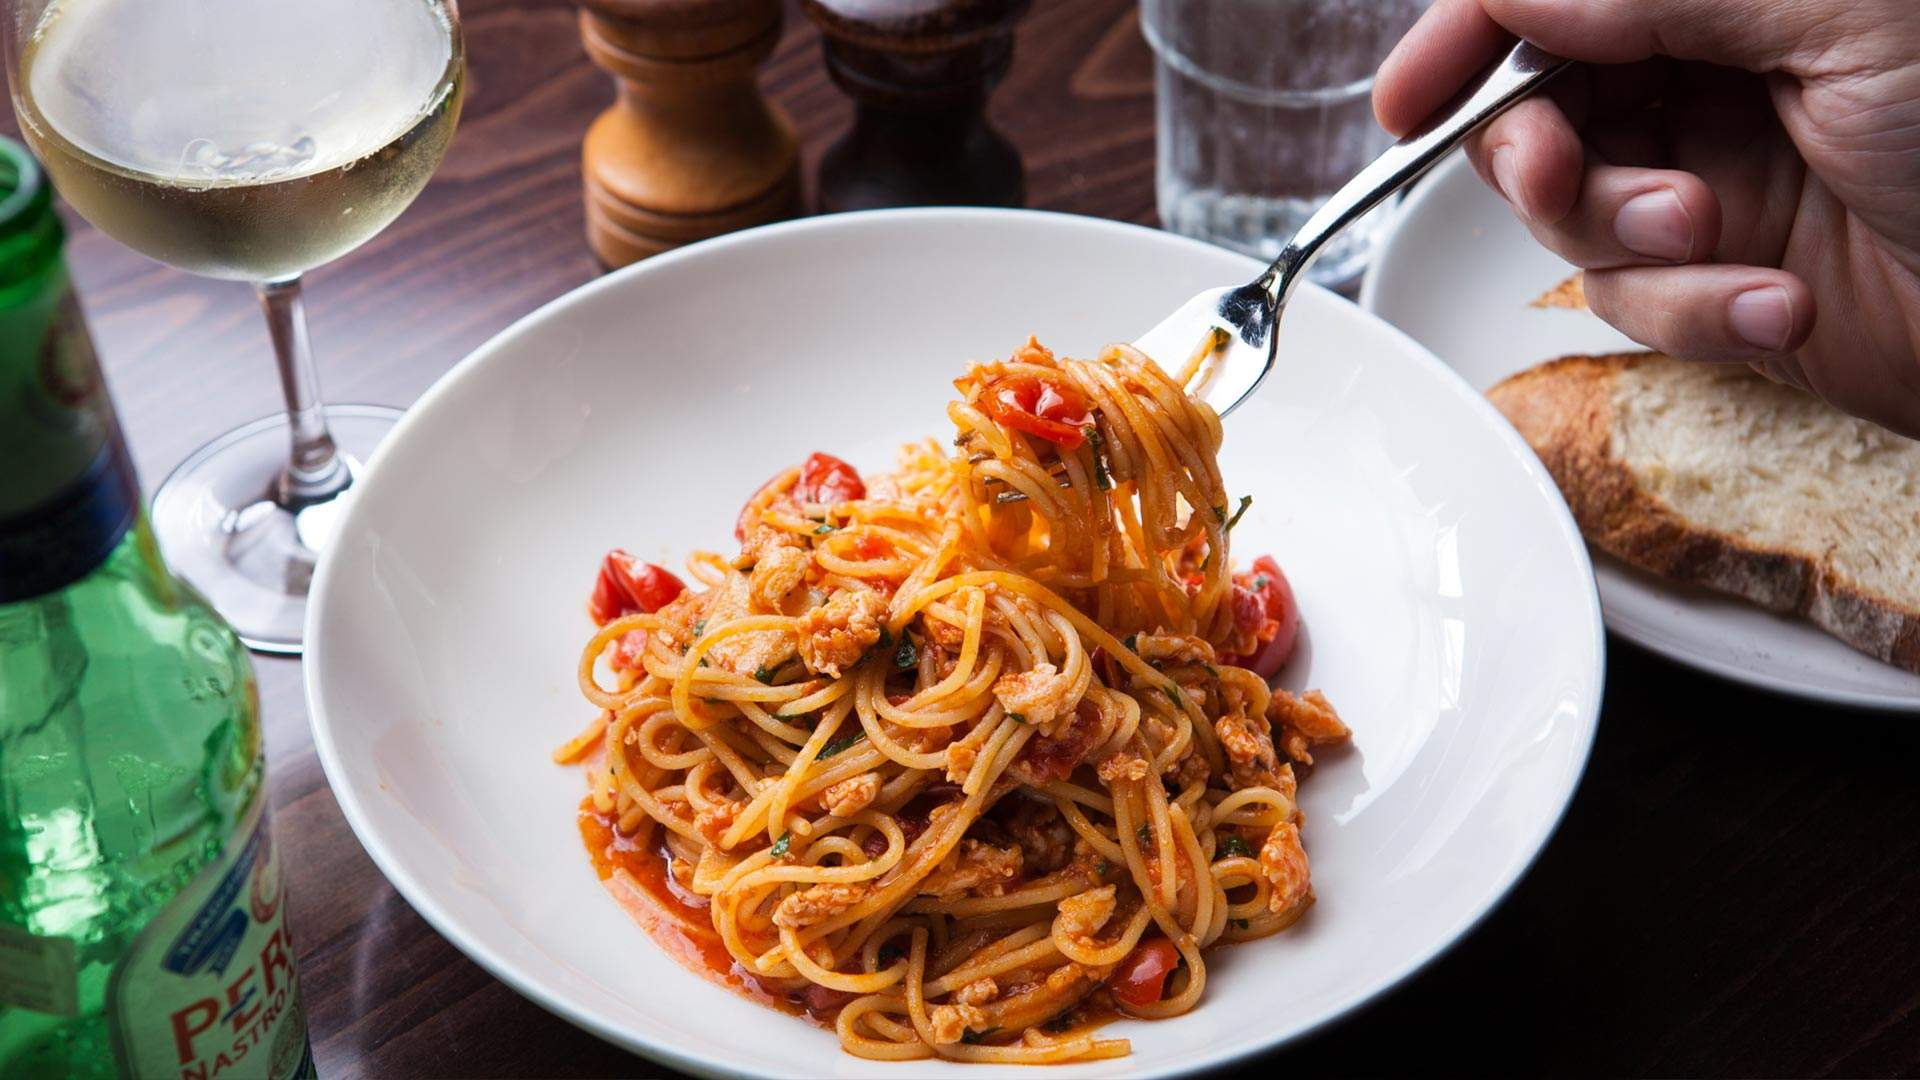 Where to Go When a Big Bowl of Pasta Is the Only Thing That Will Make You Feel Better